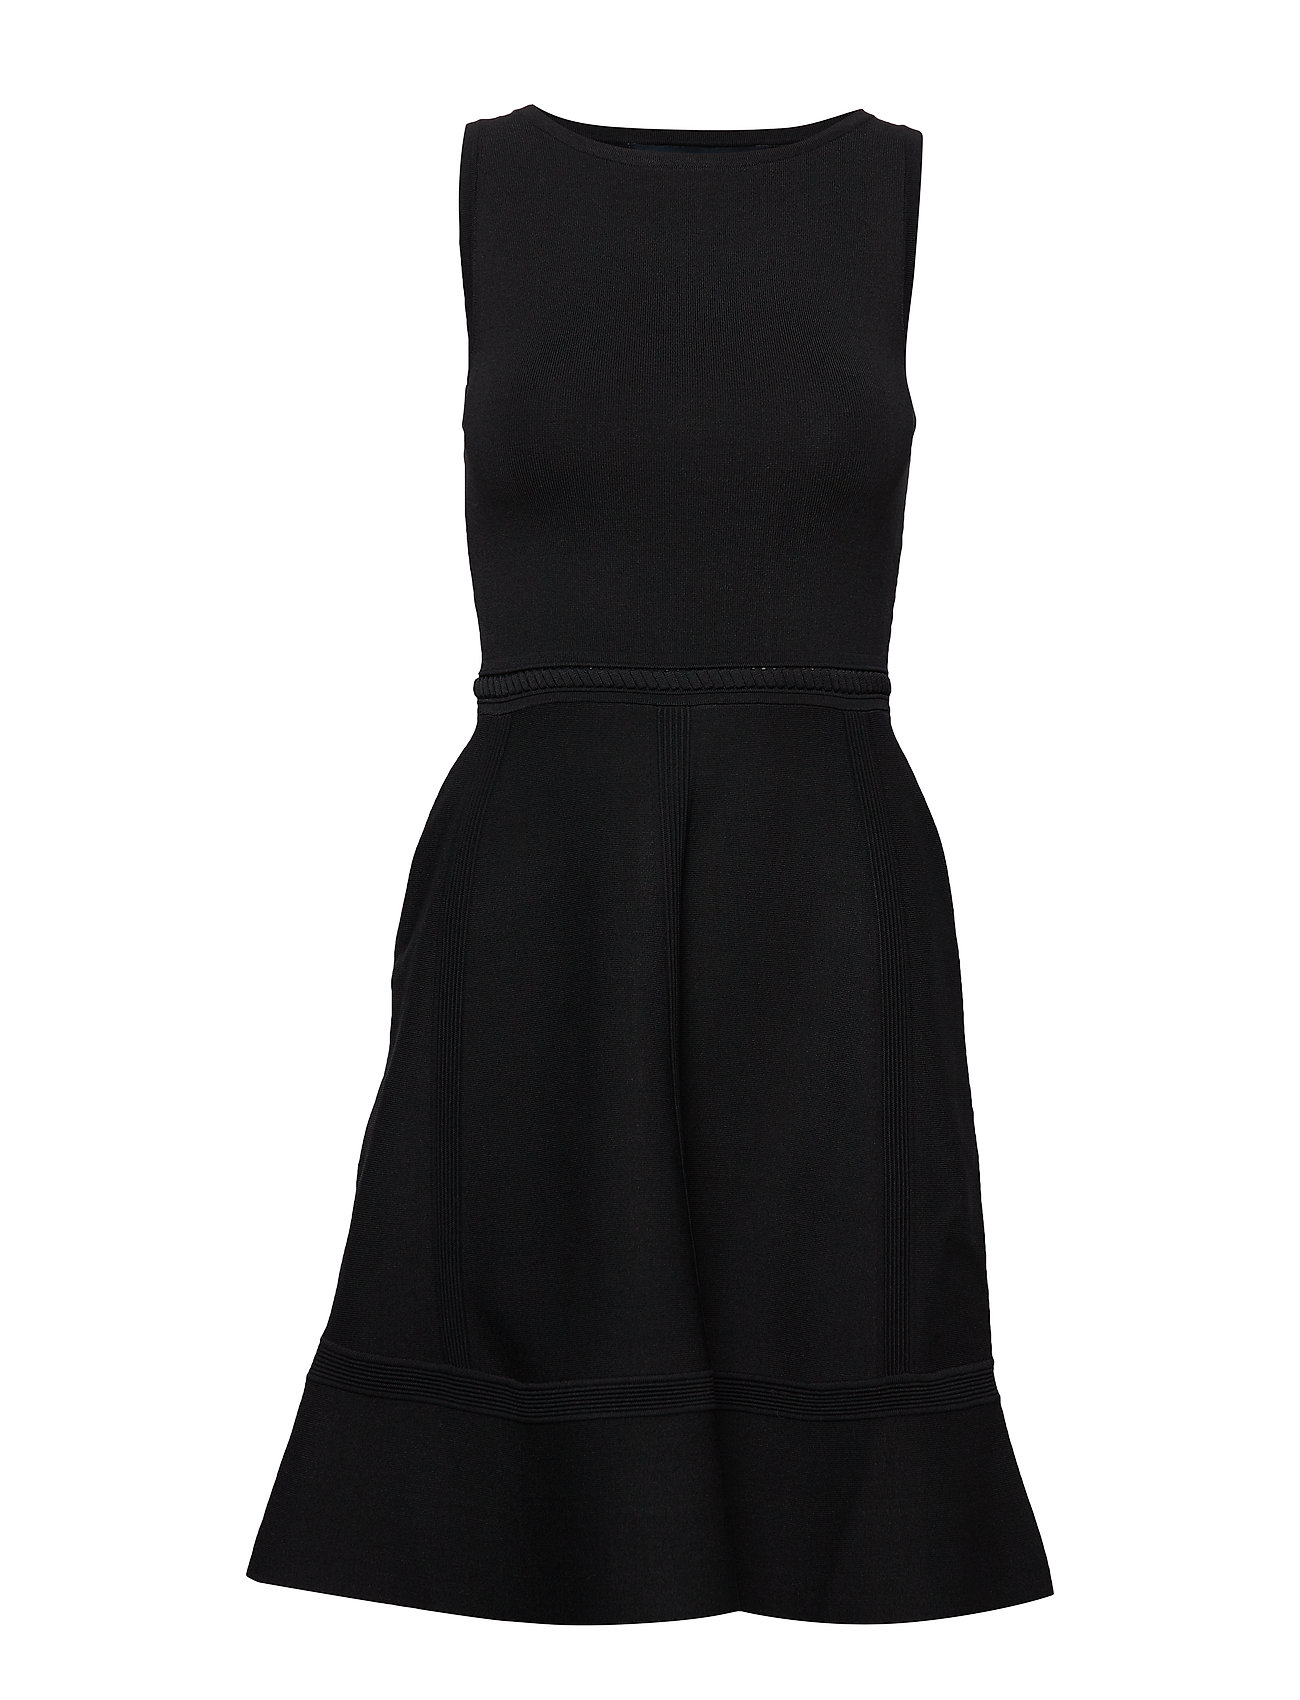 French Connection TIA TOBEY FIT N FLARE DRESS - BLACK